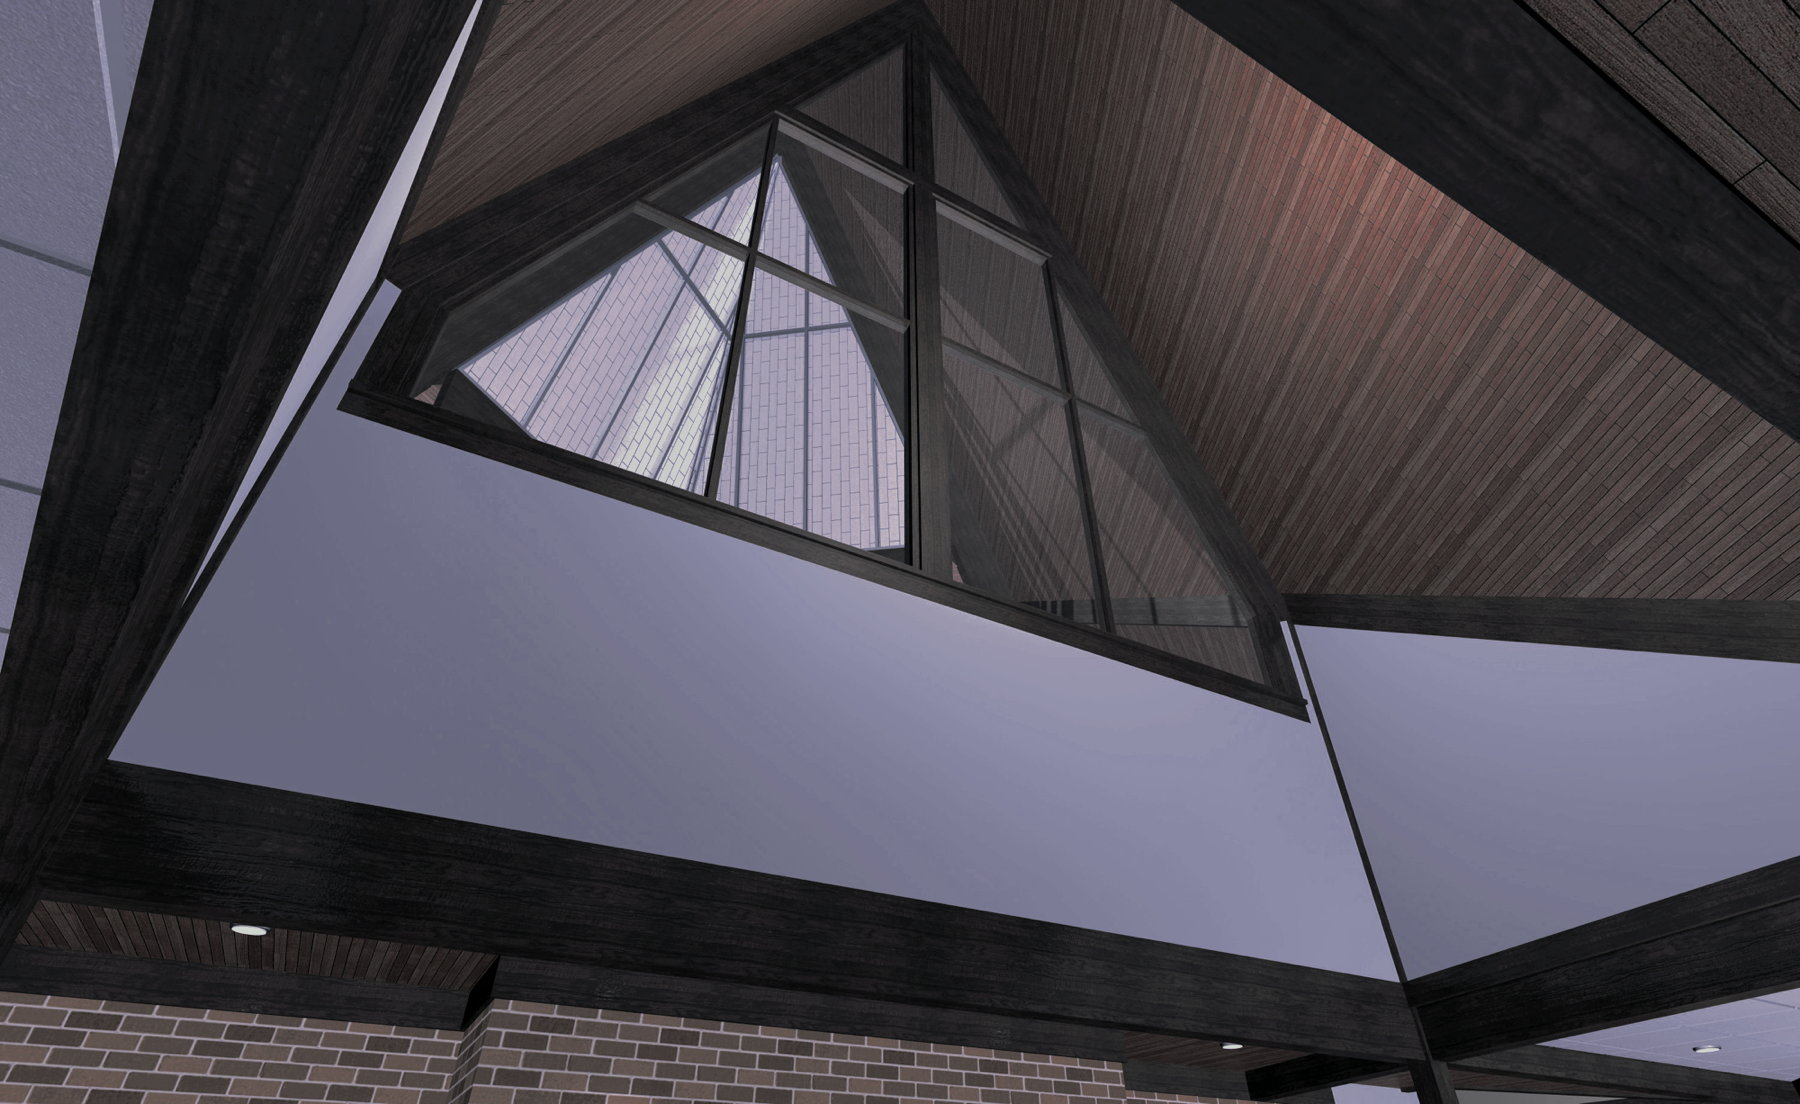 Interior glazing designed to share Sanctuary skylight with Lobby